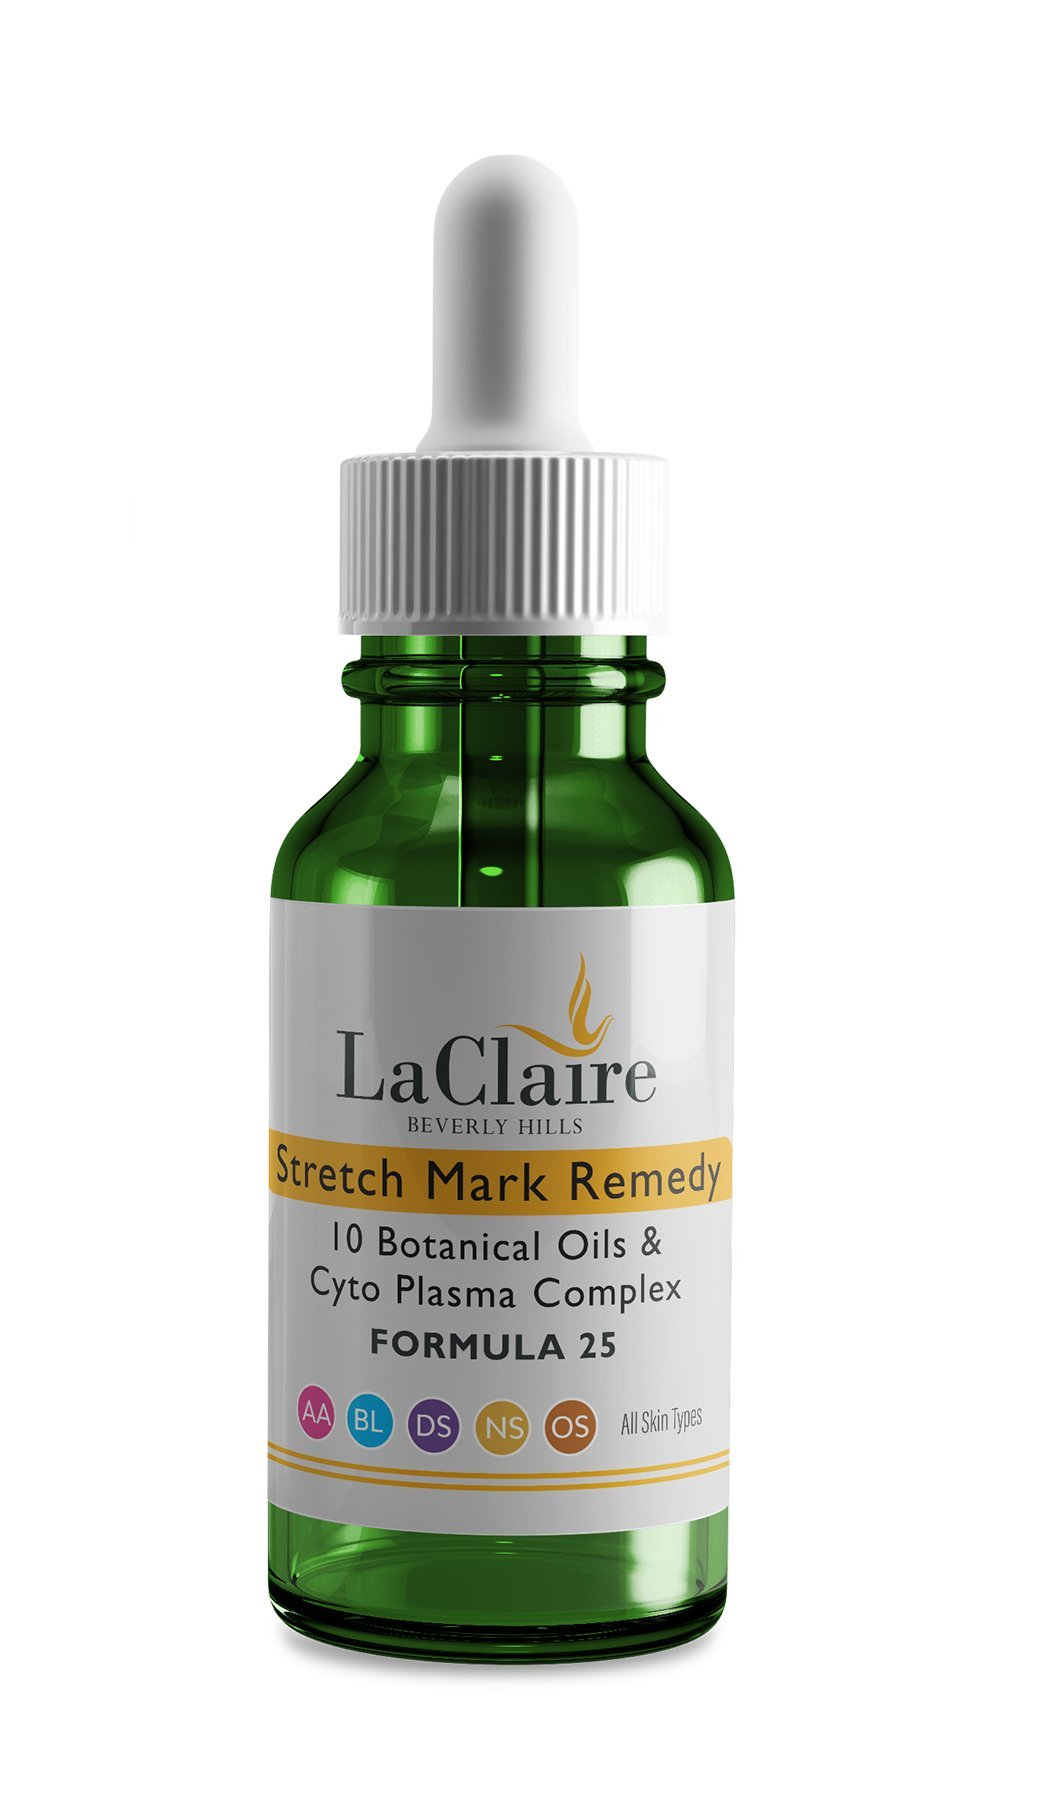 LaClaire Stretch Mark Remedy With Breakthrough Formulation of Ten Natural Botanical Oils & Cyto Plasma Complex